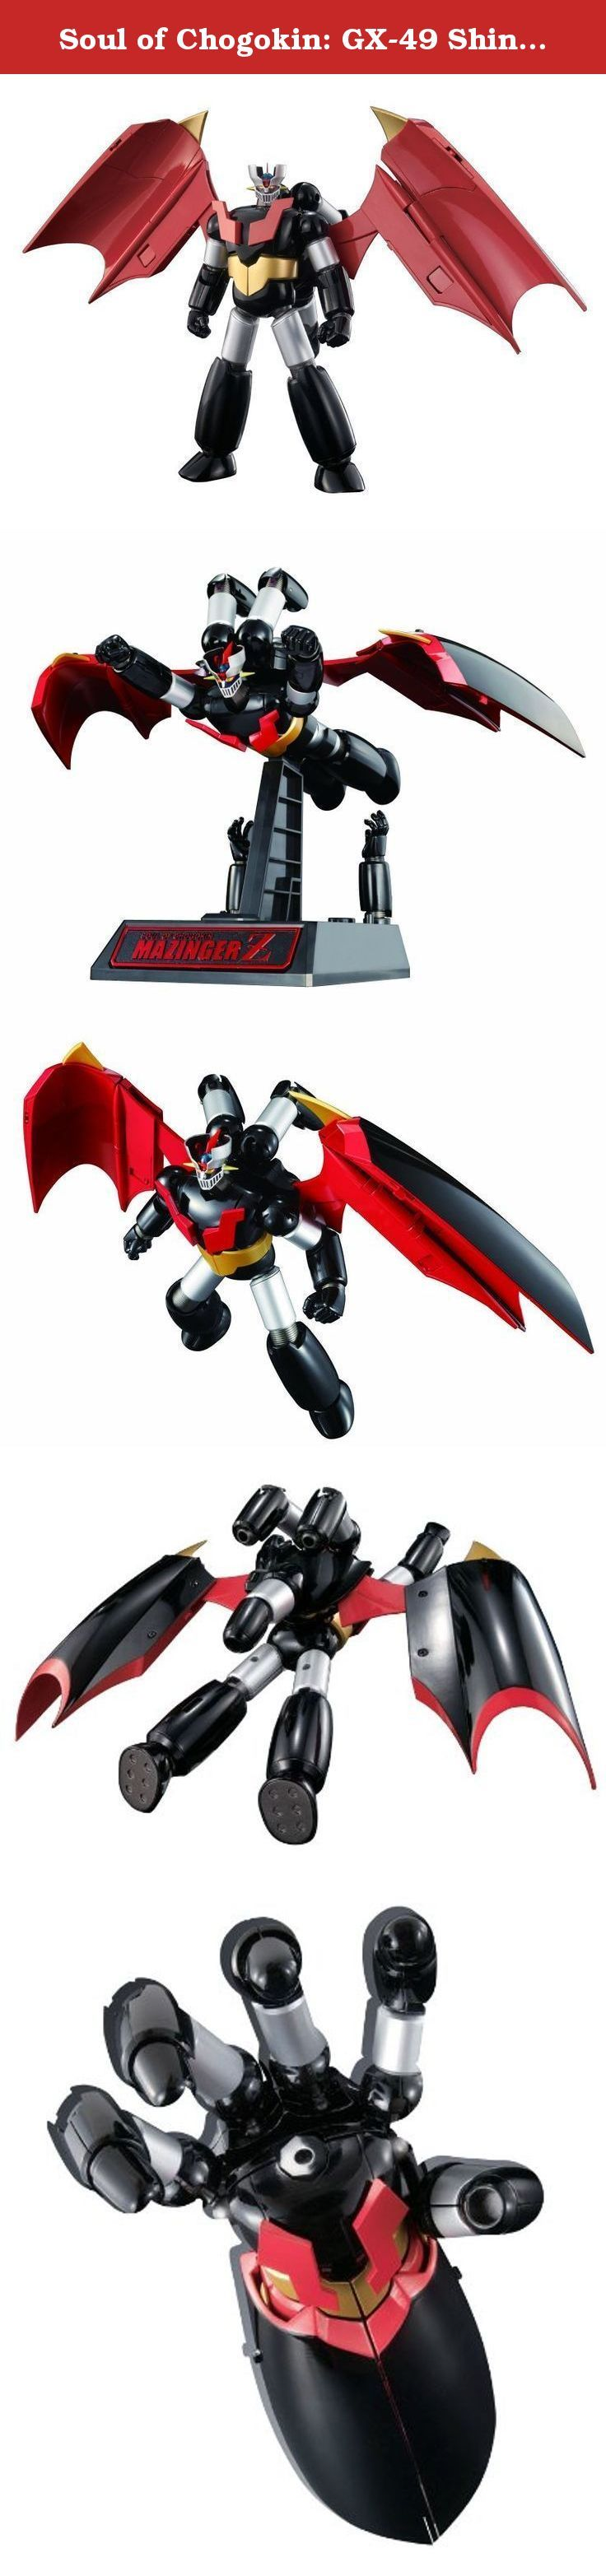 Soul of Chogokin: GX-49 Shin Mazinger Z Action Figure. Soul of Chogokin! GX-49 as seen in the Mazinger Z anime. Comes with God Scrander, Hover Pileder, and more. The robot transforms into one huge fist! The remarkable Shin Mazinger Z Soul of Chogokin GX-49 Figure is just like the one seen in the Mazinger Z anime. The robot stands 6 1/3-inches tall, is made from die-cast metal and PVC, and comes with God Scrander, Hover Pileder, display stand, and alternate fist parts. The GX-49 even...